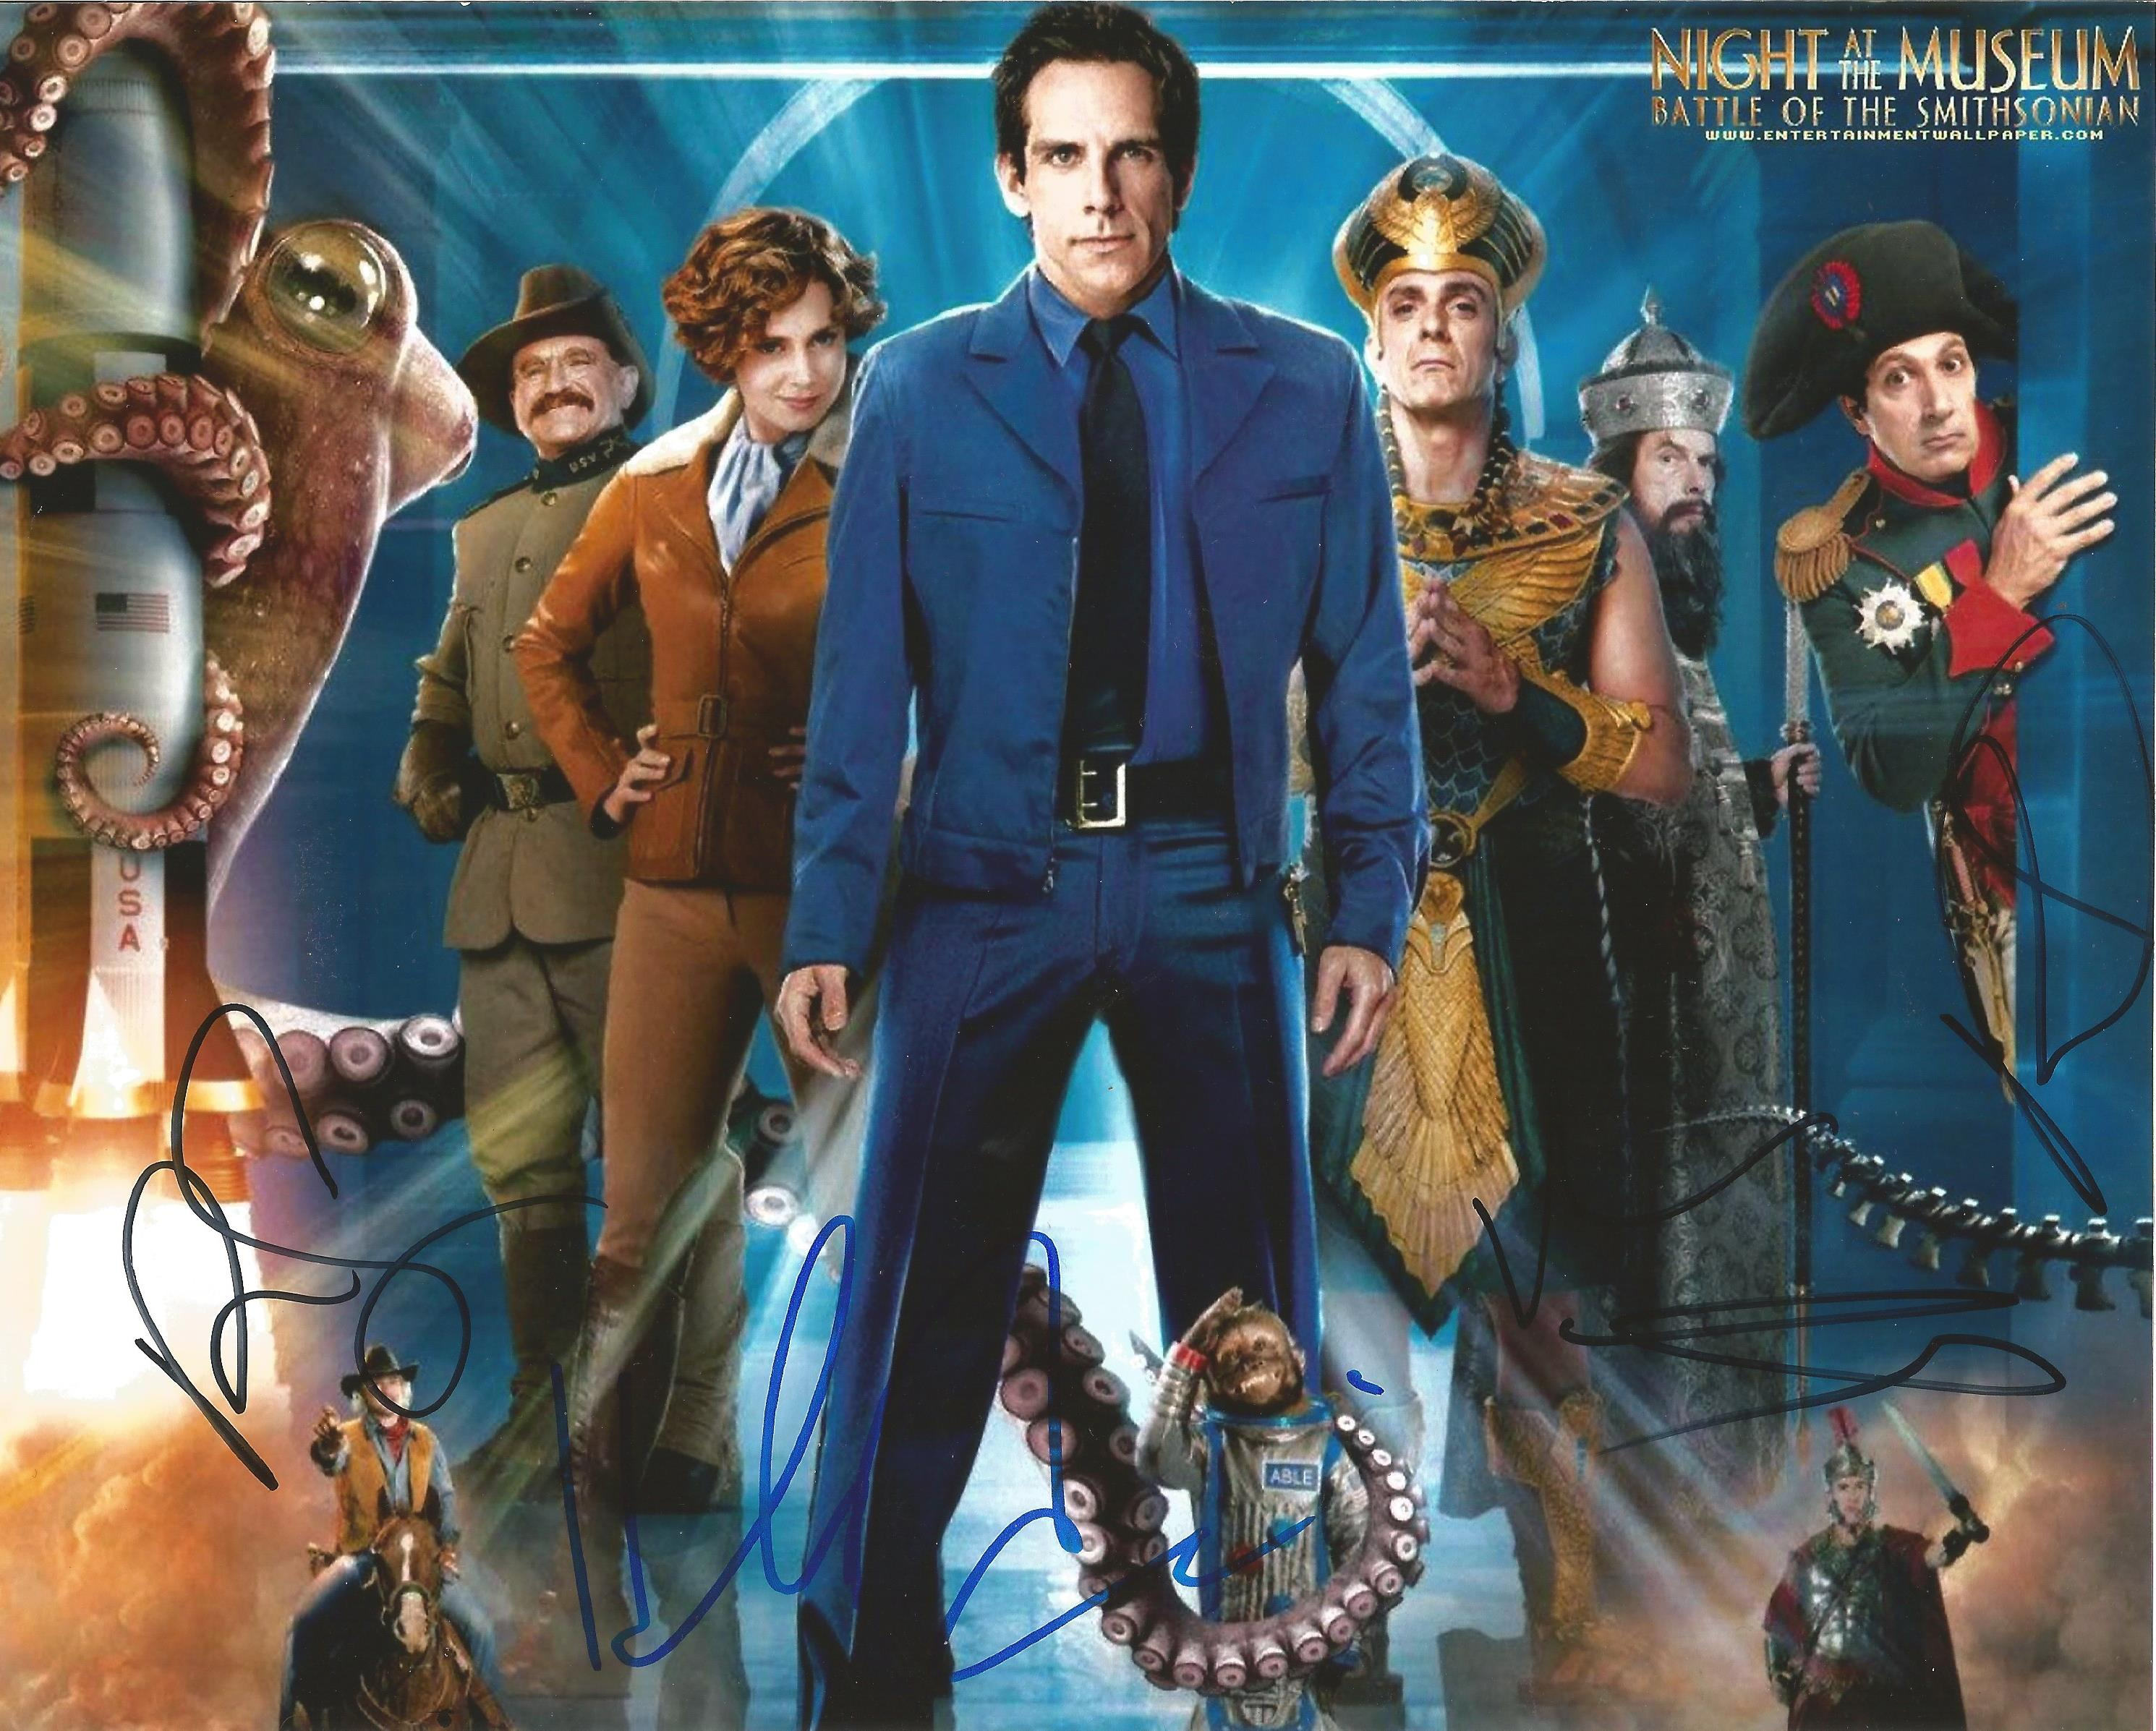 Lot 58 - Night At The Museum signed 10 x 8 colour Cast Photoshoot Landscape Photo Signed By Ben Stiller, Hank